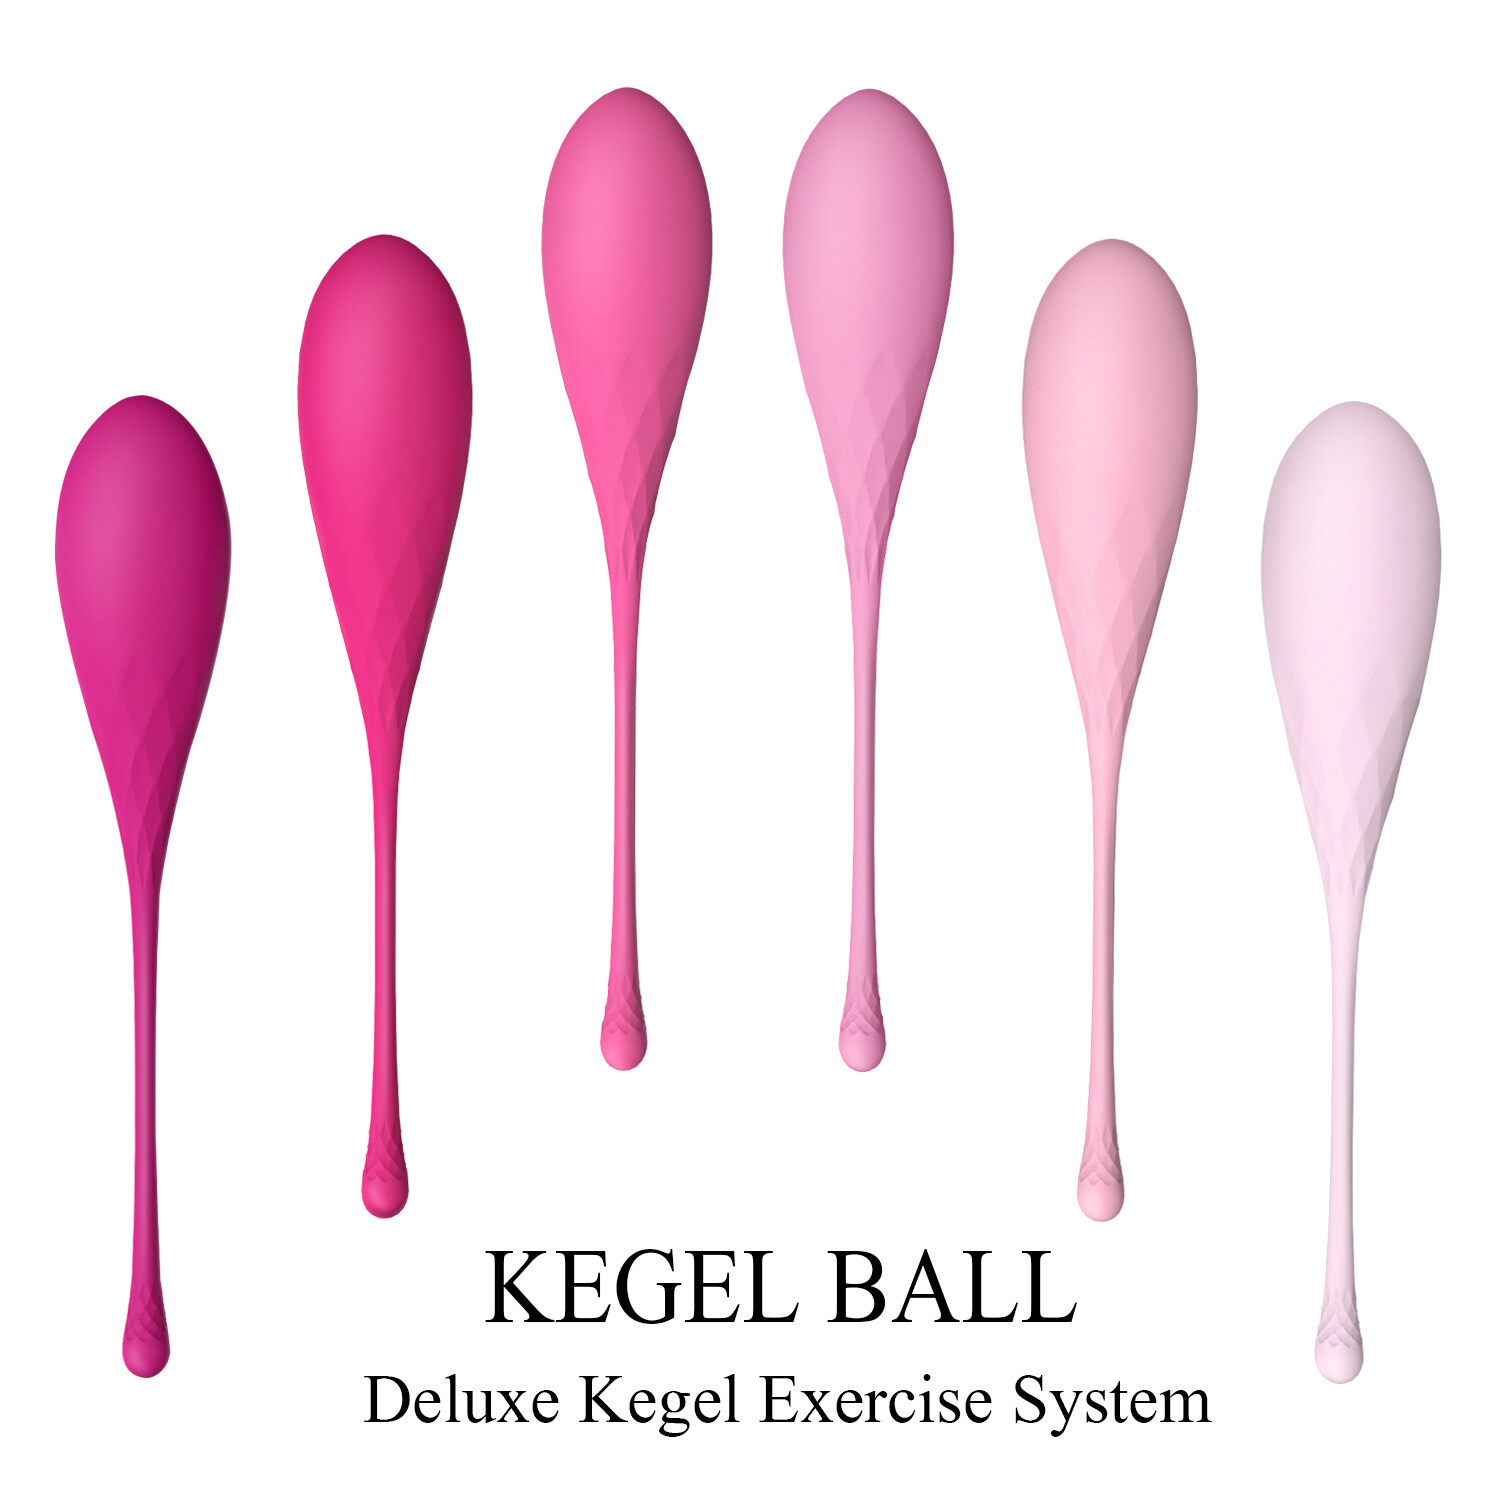 S-HANDE Doctor Recommended Pelvic Floor Exercises wights ben wa geisha balls kegel balls set for tightening